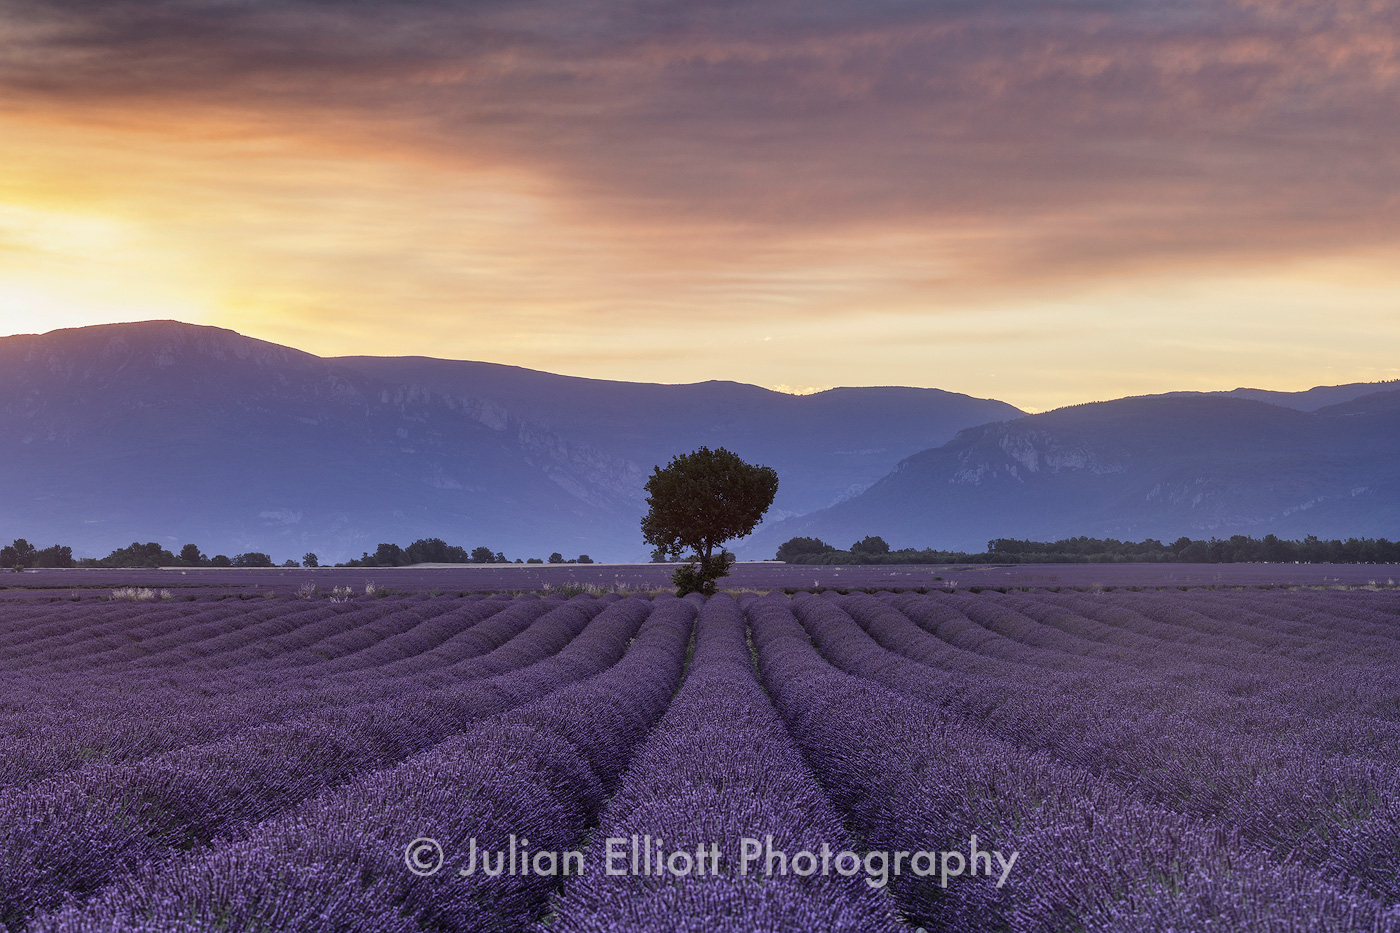 Lavender fields on the Plateau de Valensole, Provence.